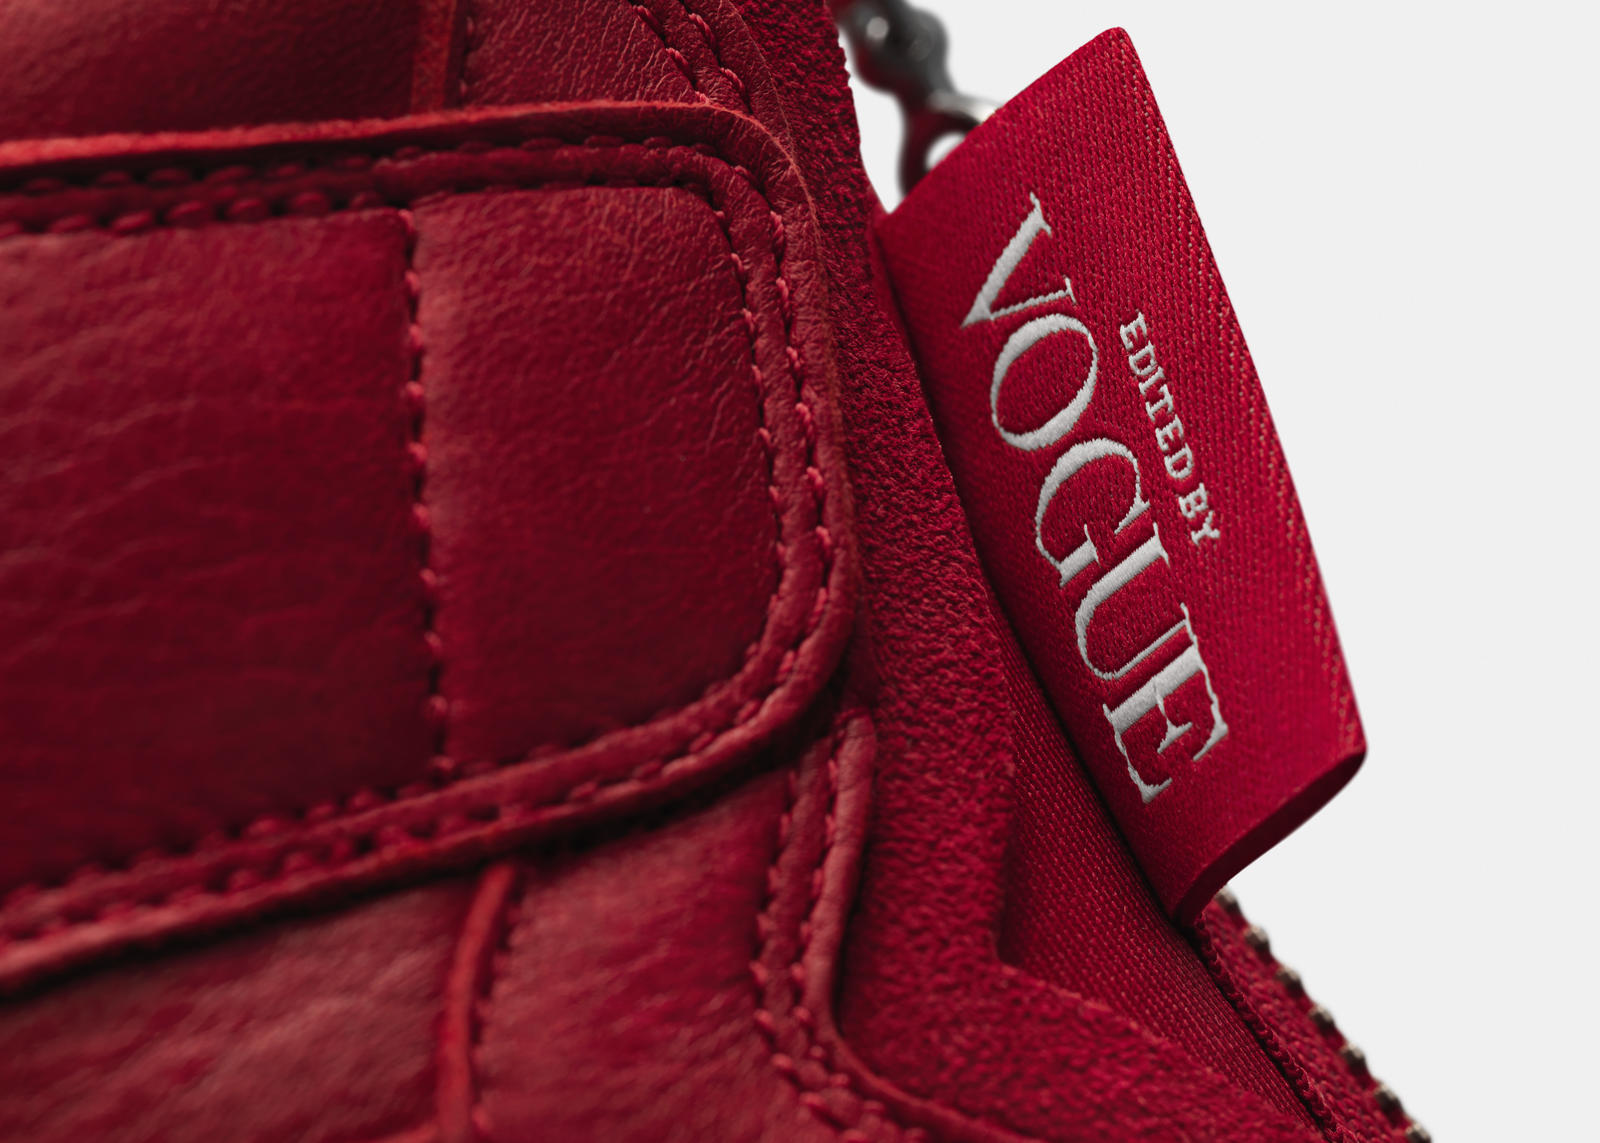 Jordan Brand and Vogue Partner to Create First-Ever Jordan Women's Collaboration 2